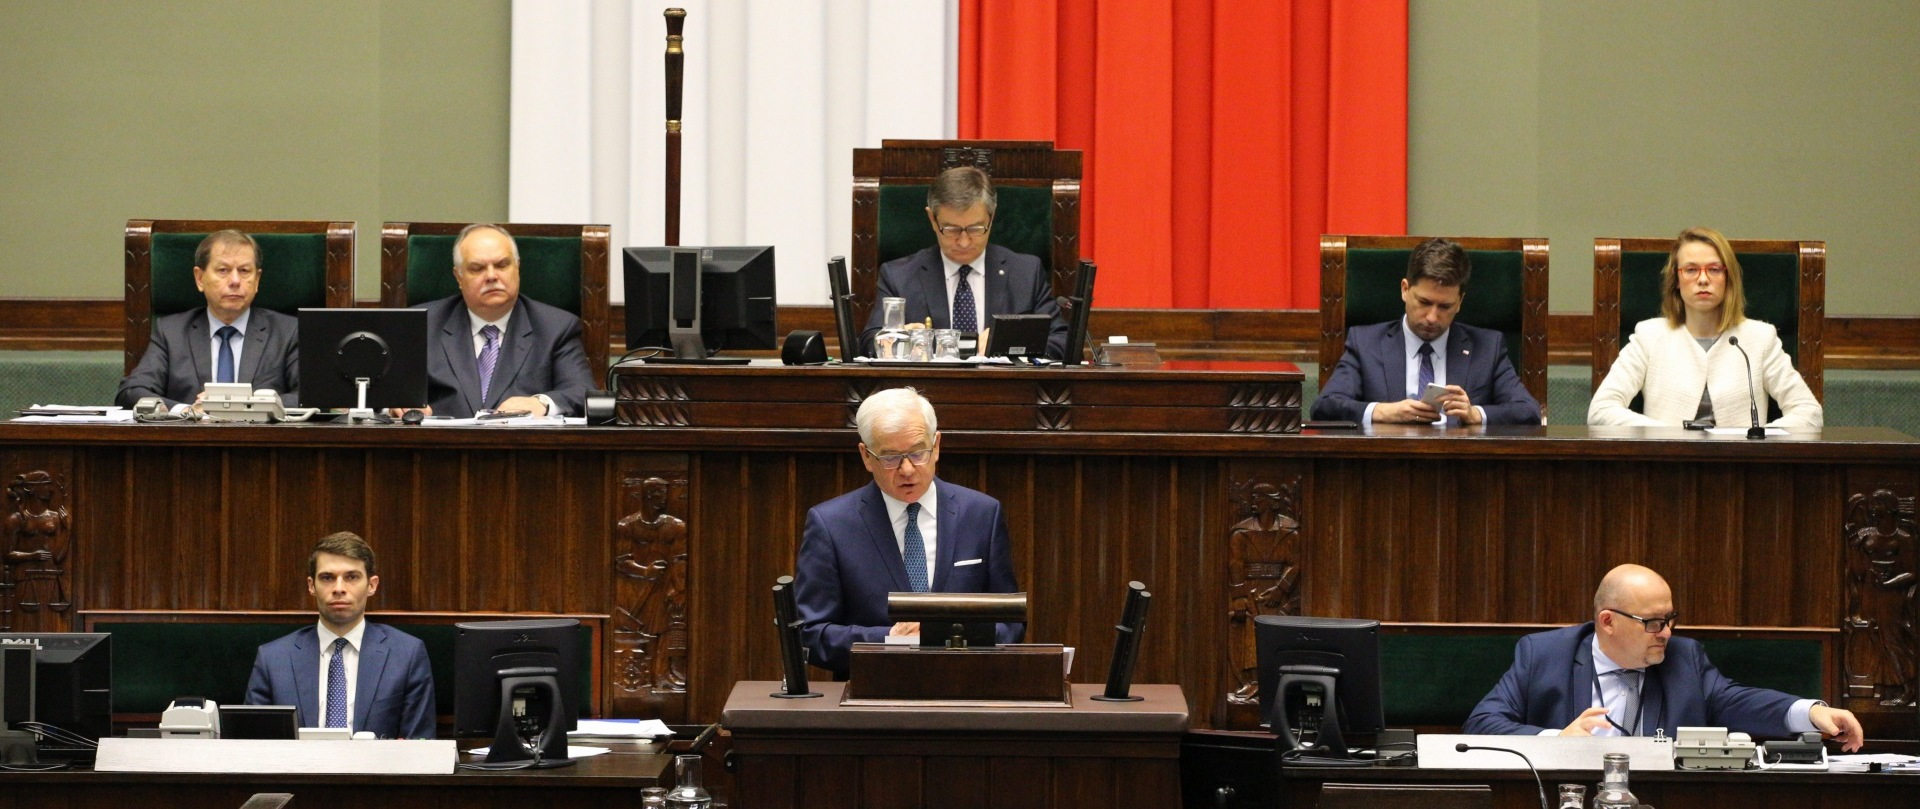 Annual speech of Foreign Minister Jacek Czaputowicz in Parliament 2019